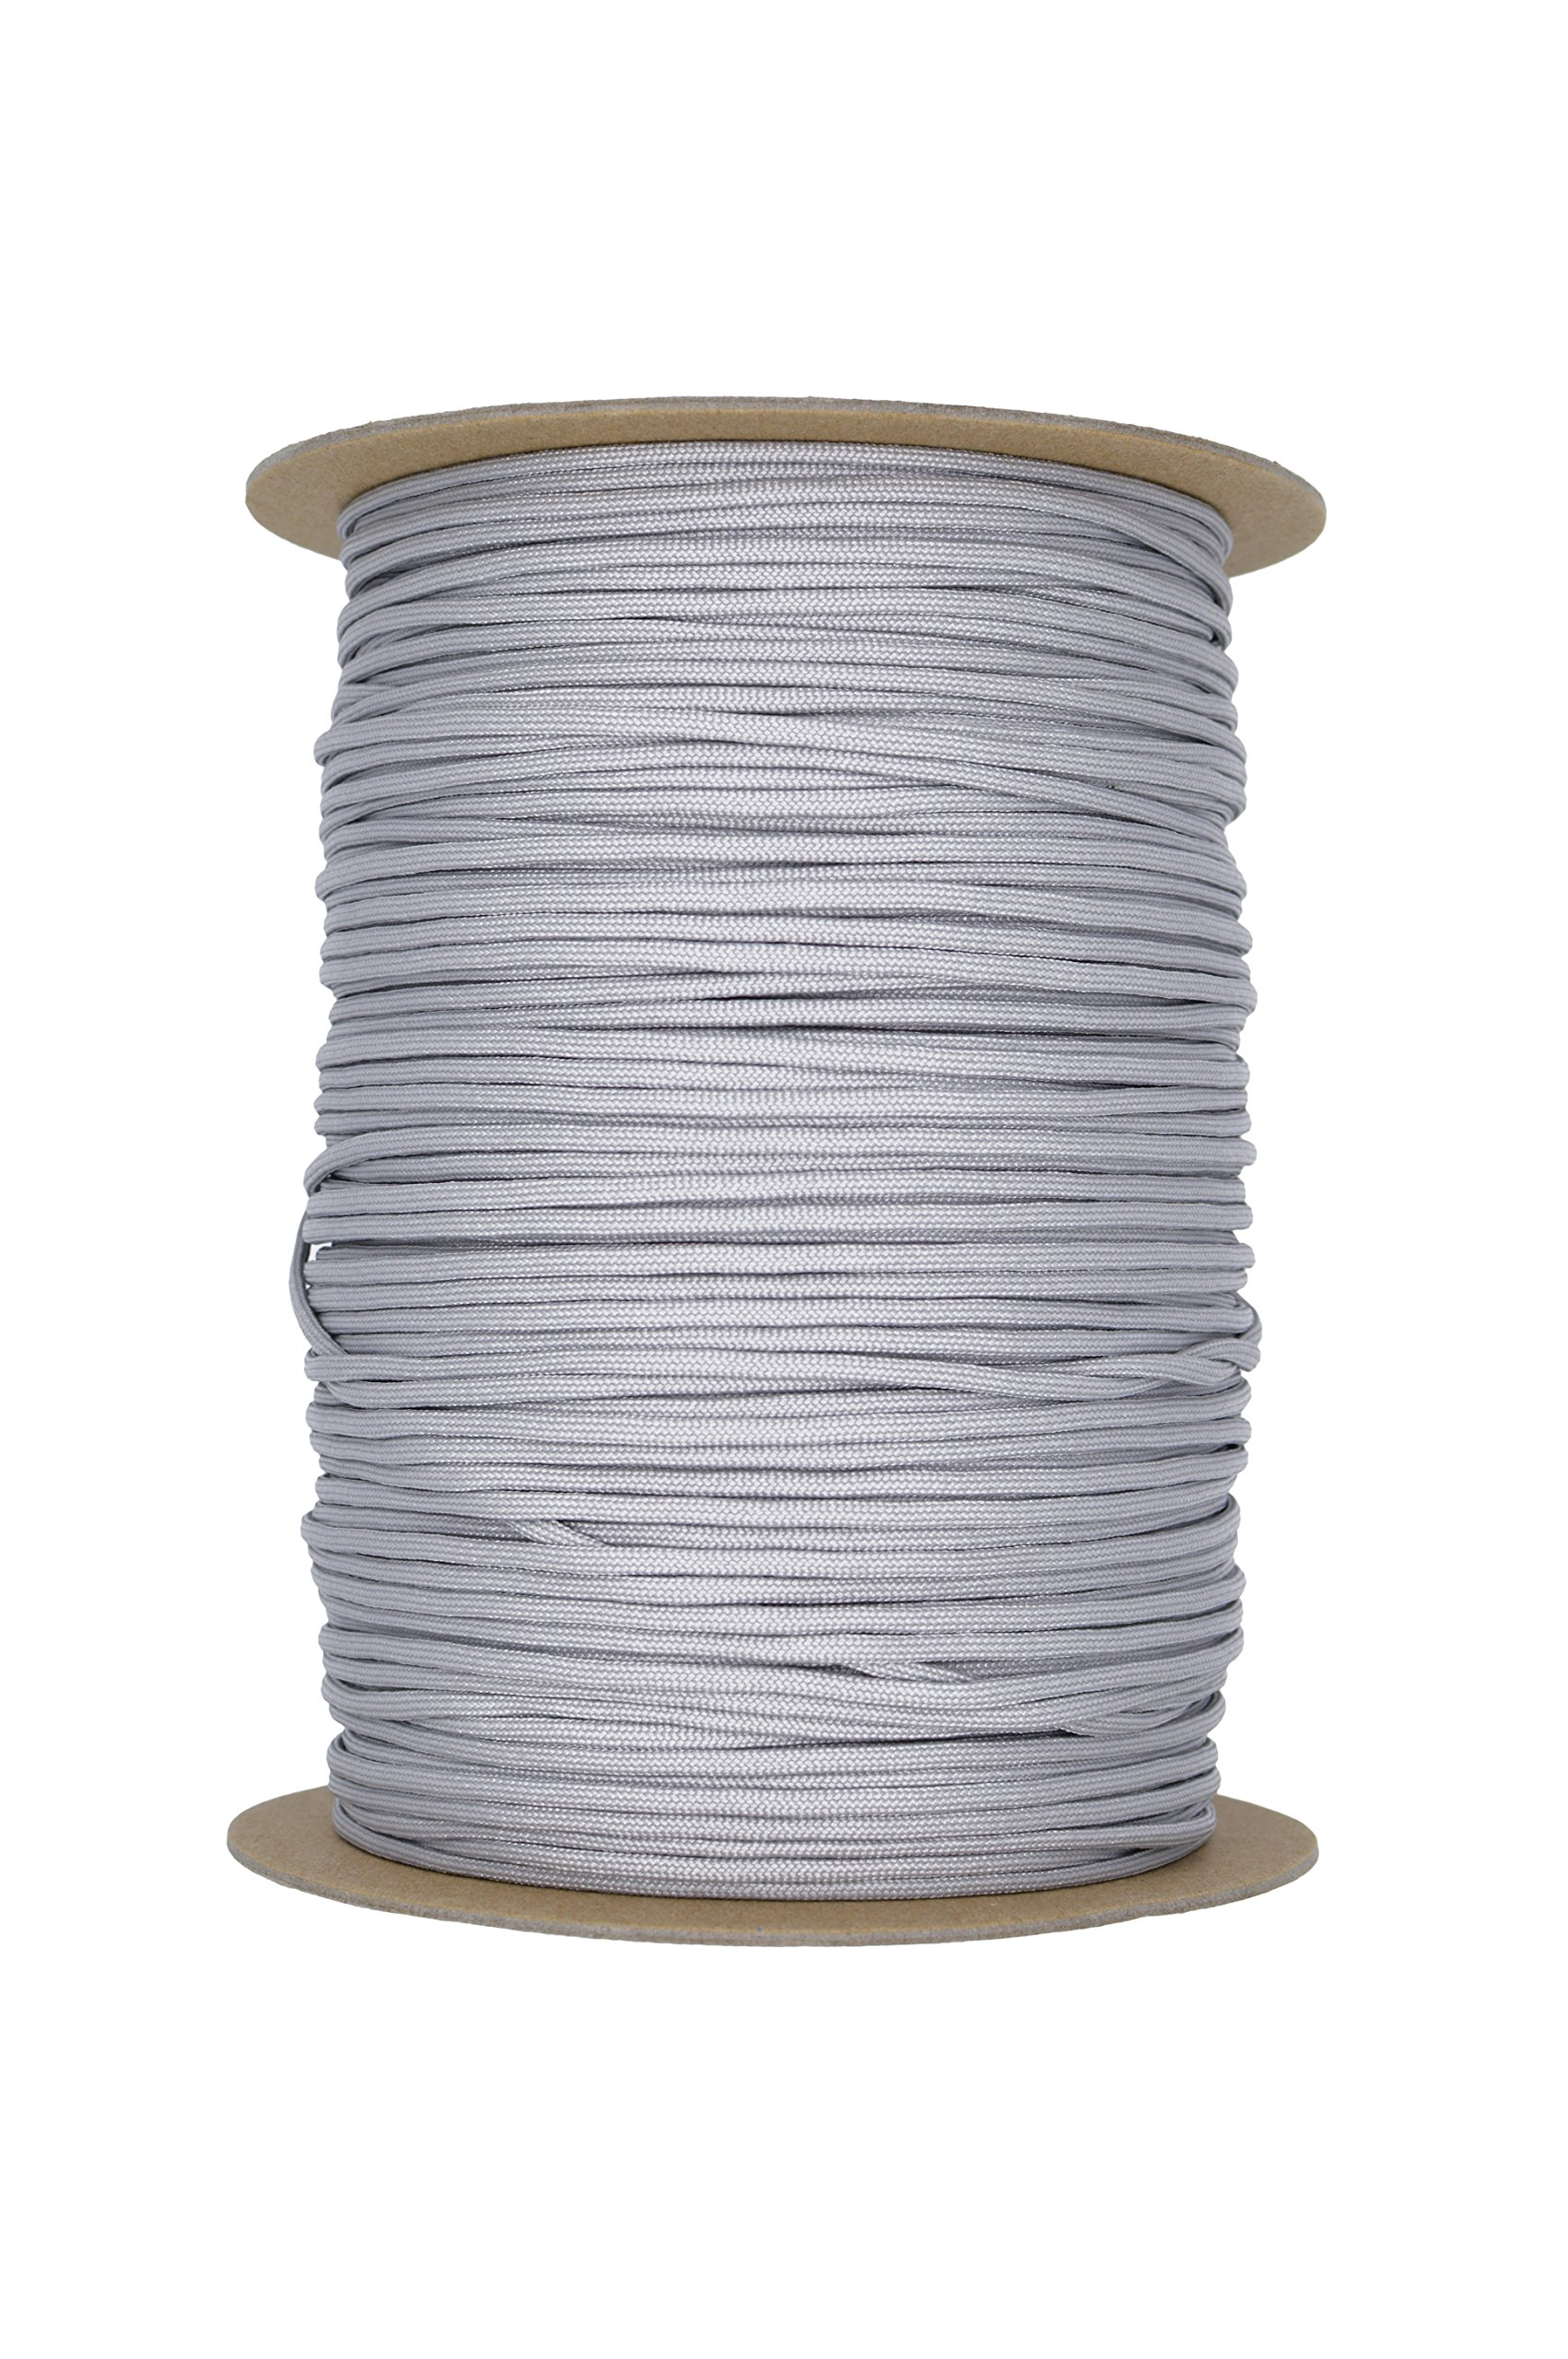 Paracord Rope 550 Type III Paracord - Parachute Cord - 550lb Tensile Strength - 100% Nylon - Made In The USA (Silver Grey, 100 Feet) by Paracord Rope (Image #3)